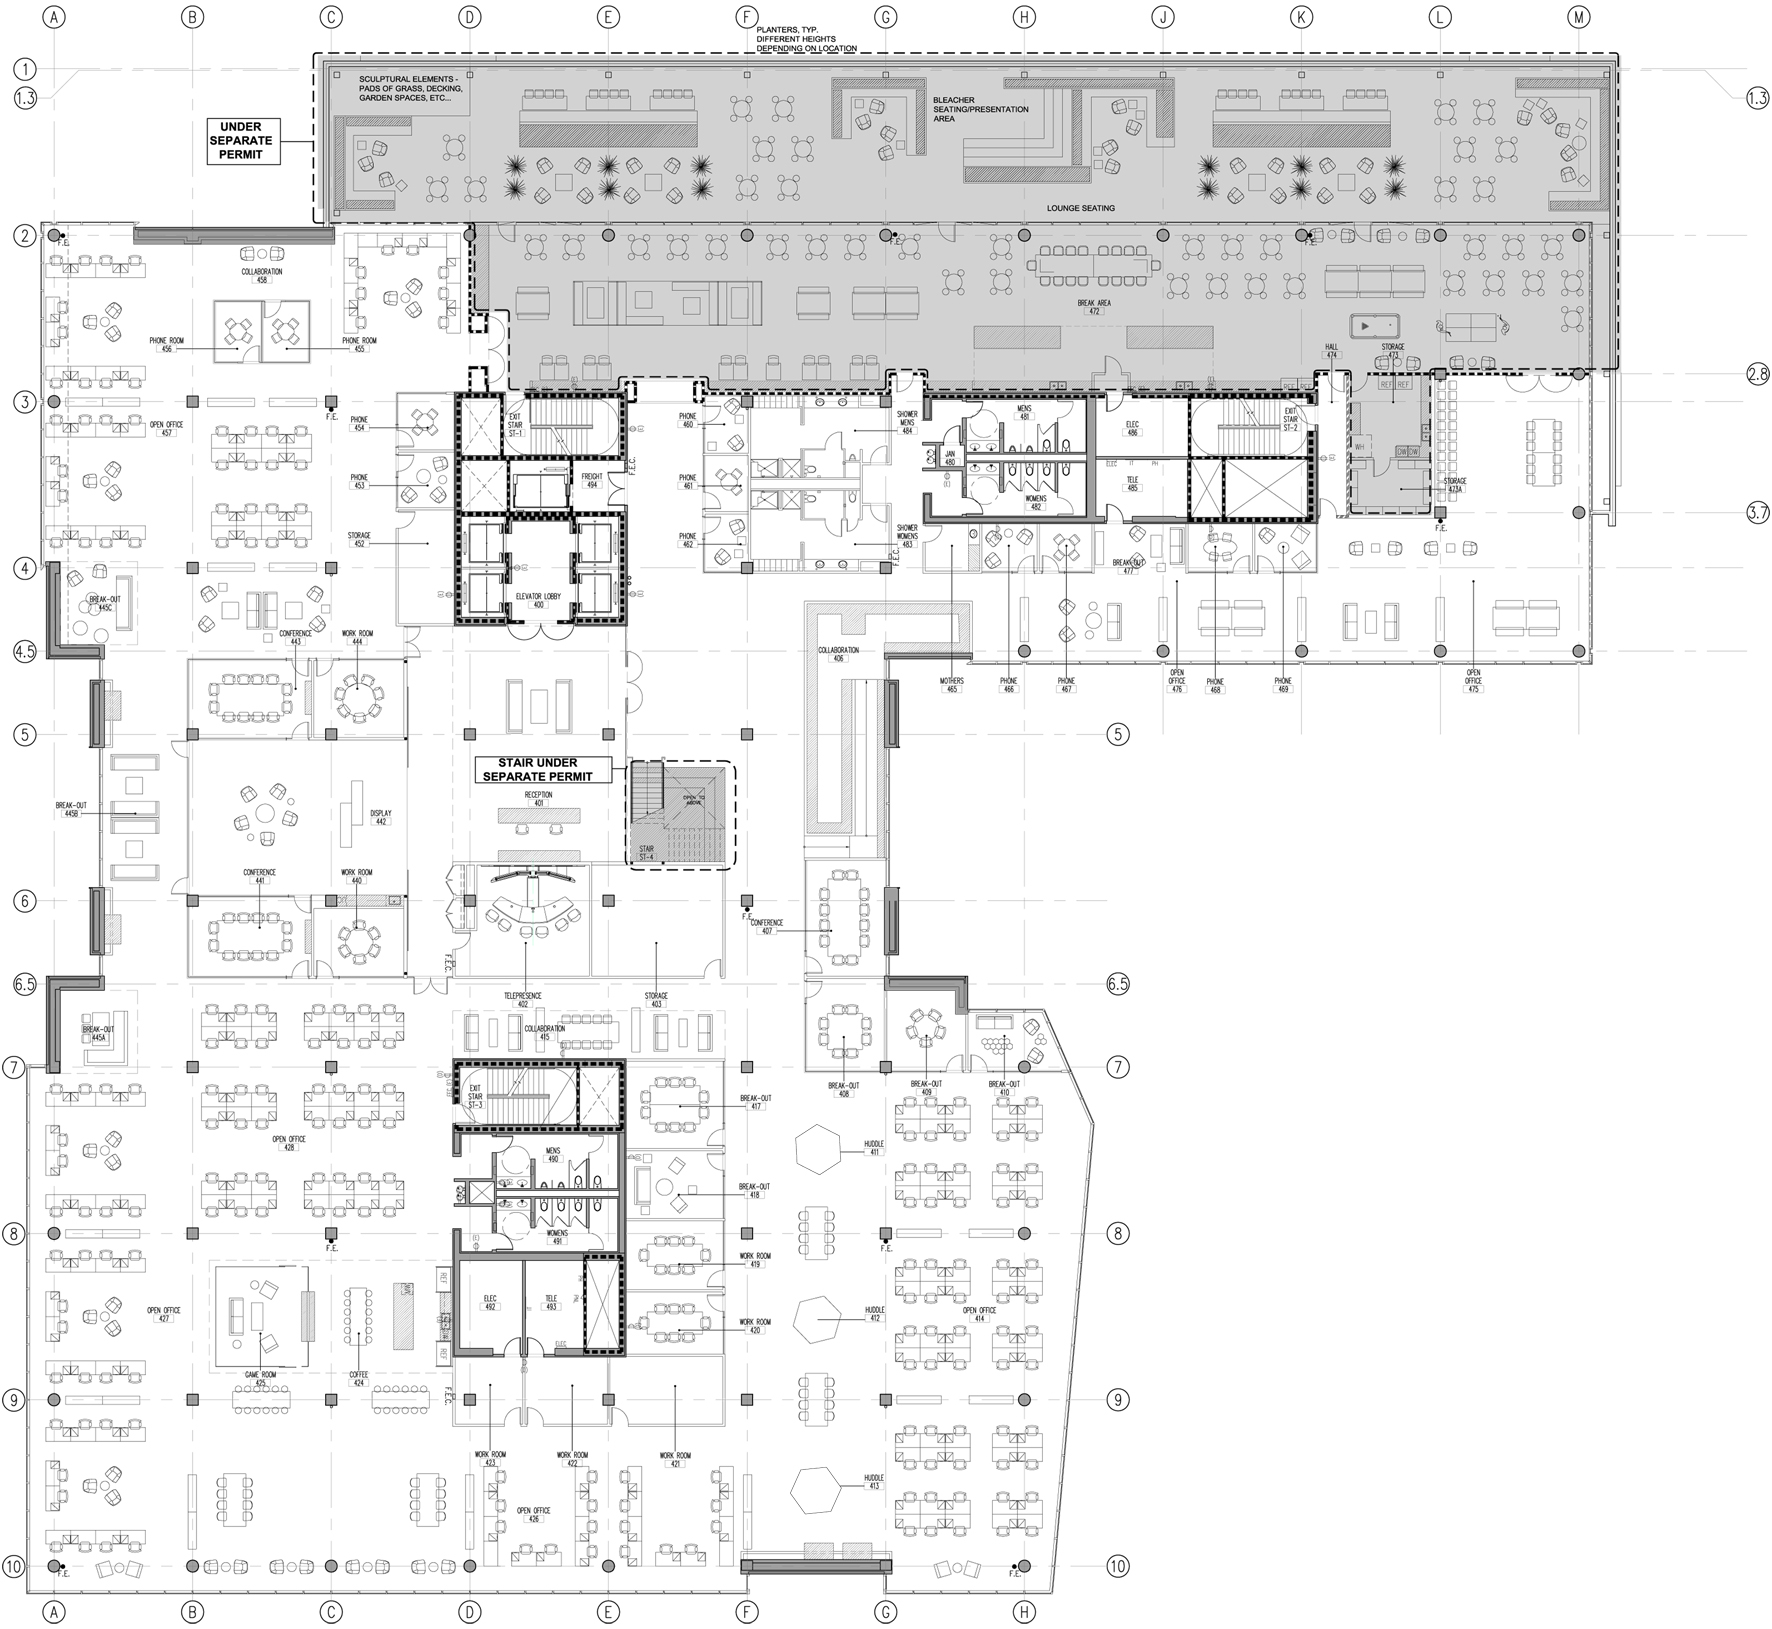 office plan interiors. Image 33 Of 34 From Gallery Cisco Offices / Studio O+A. Fourth Floor Plan Office Interiors G